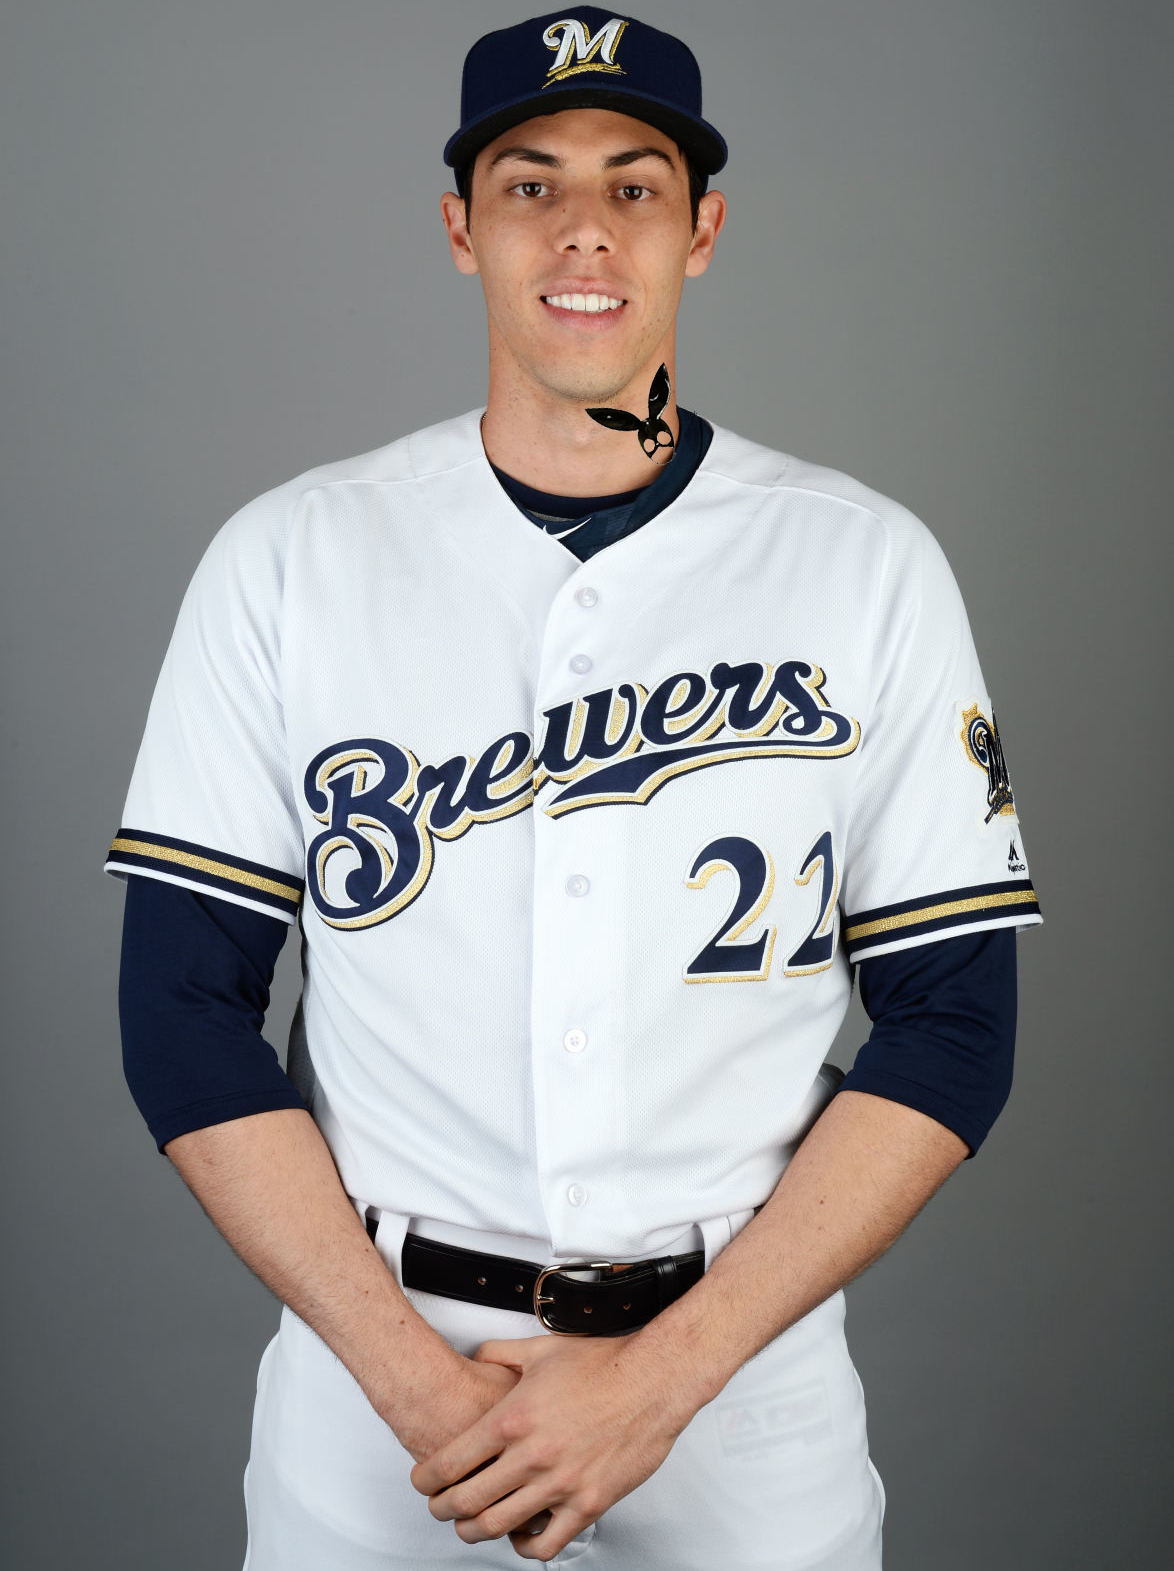 Pete Davidson sporting a fresh Brewers jersey.